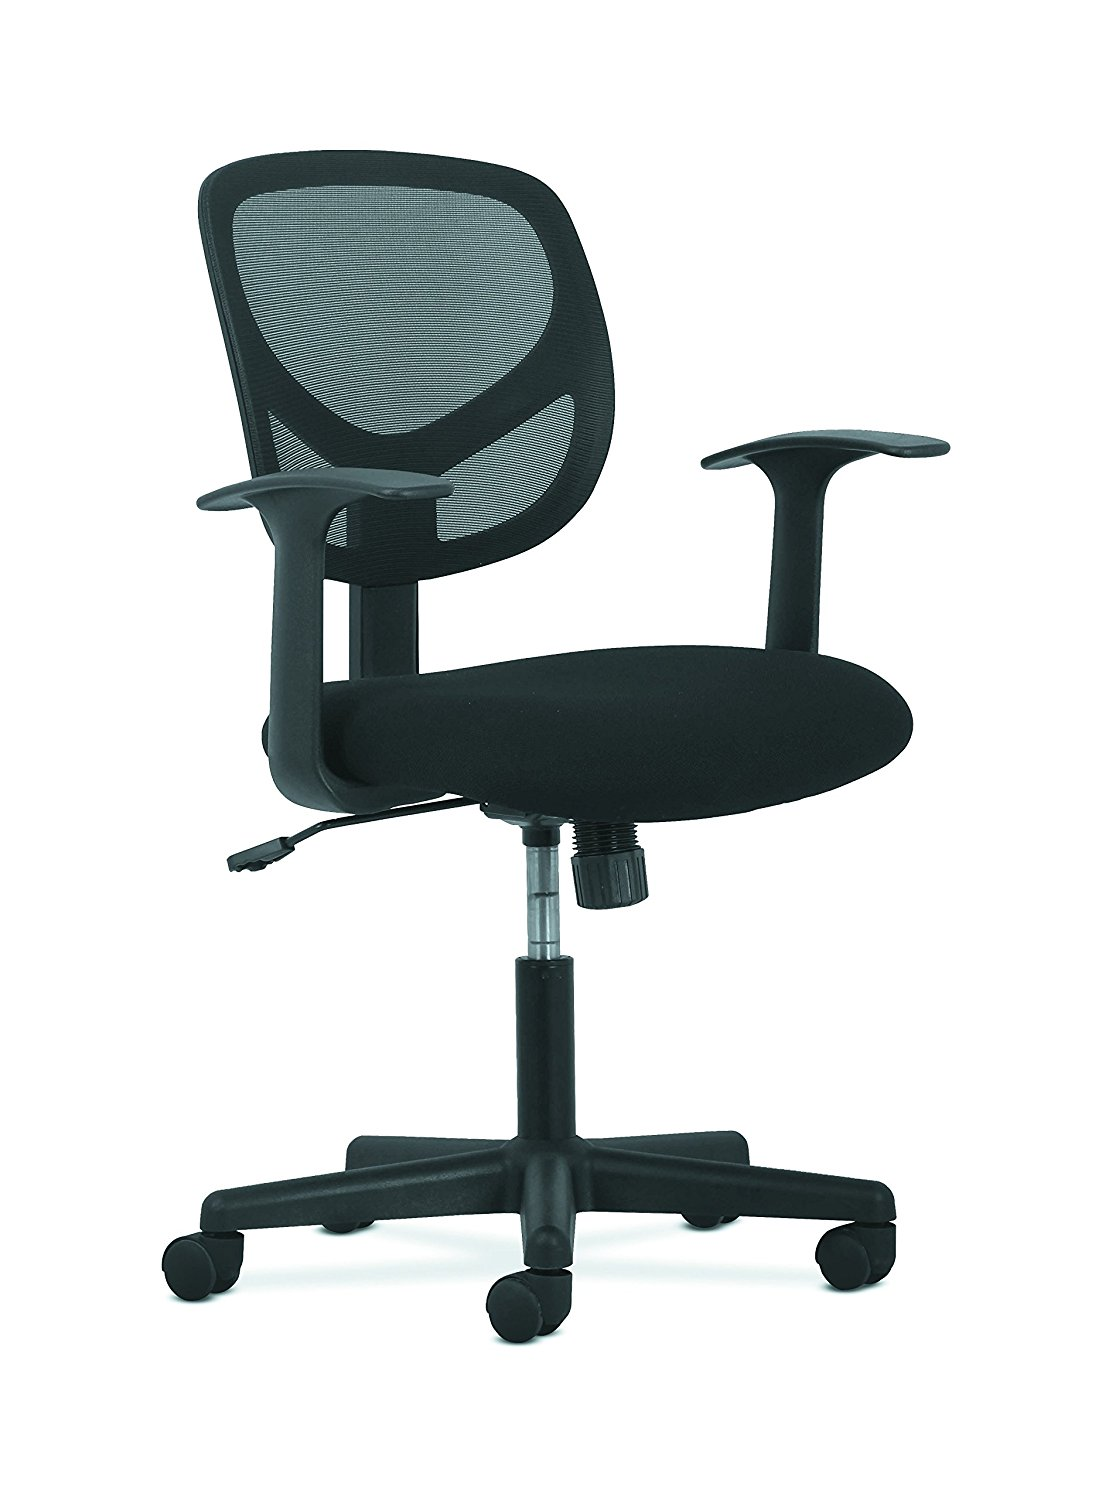 office chair support for upper back small apartment table and chairs basyx swivel mid mesh task with arms ergonomic computer hvst102 cooling work added comfort breathable